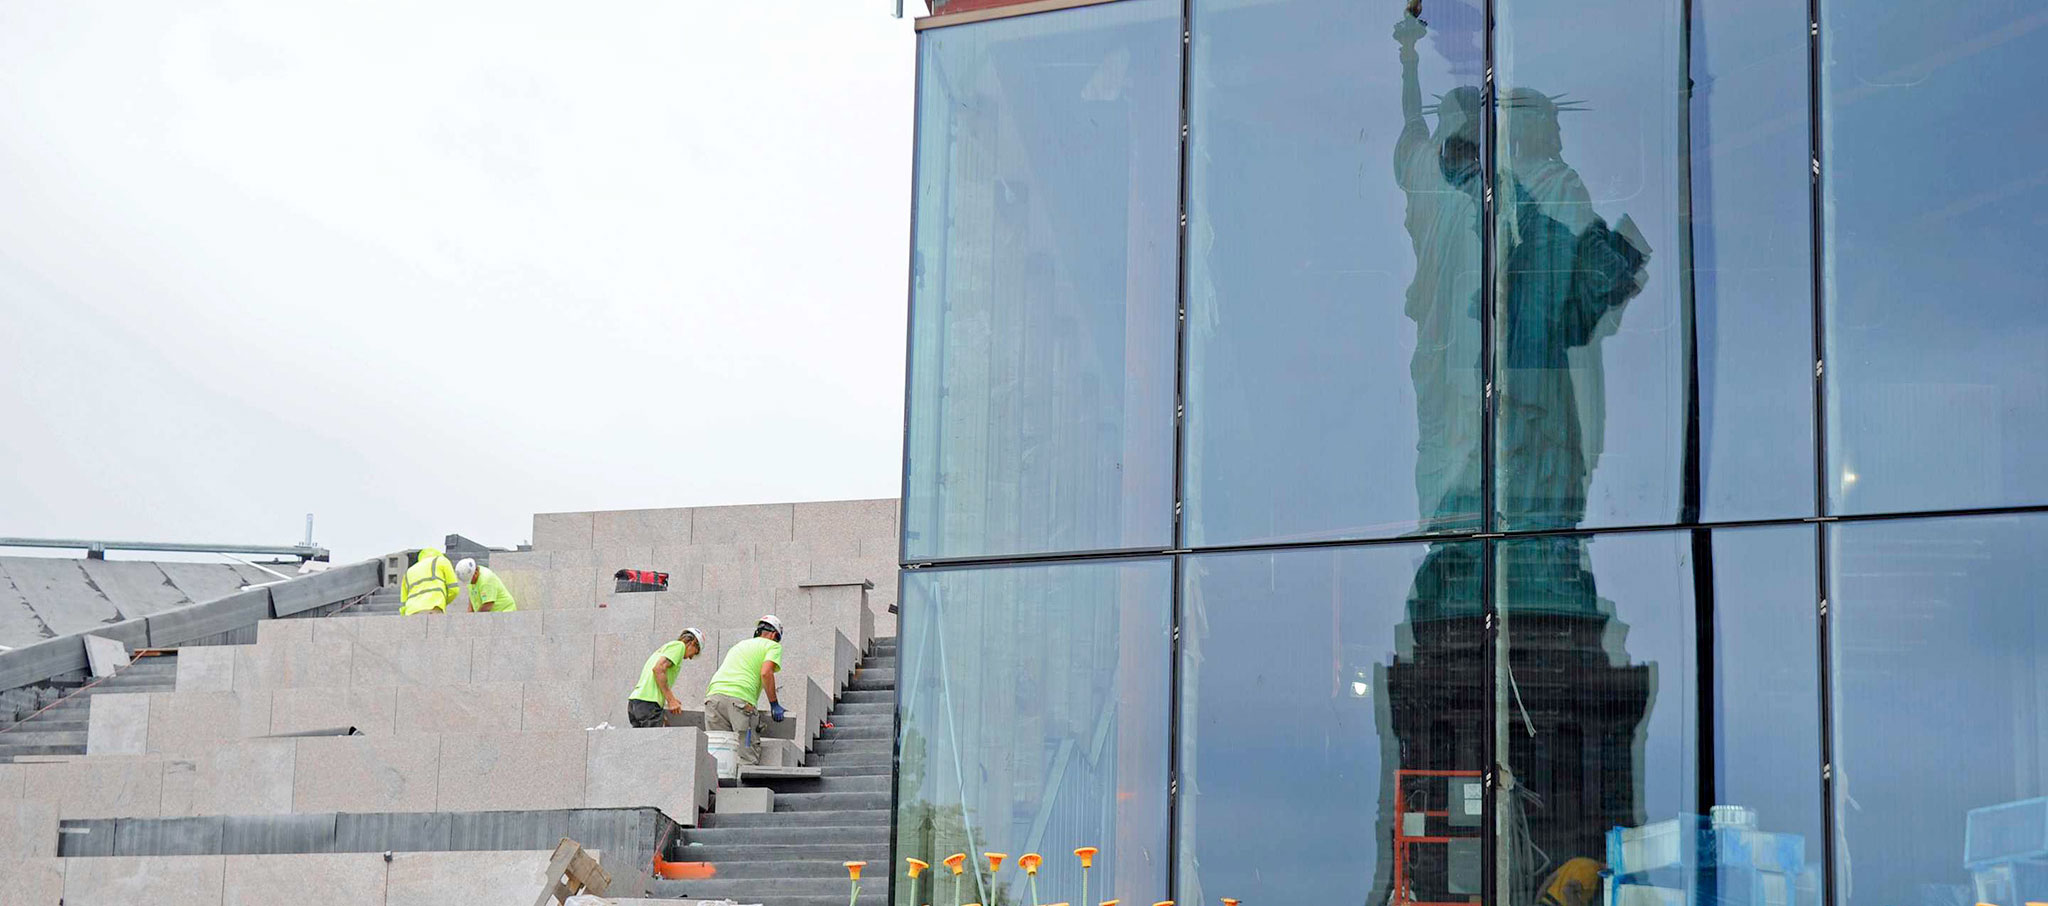 Statue of Liberty Museum by FXCollaborative. Photograph by Diane Bondareff/AP Images for Statue of Liberty-Ellis Island Foundation